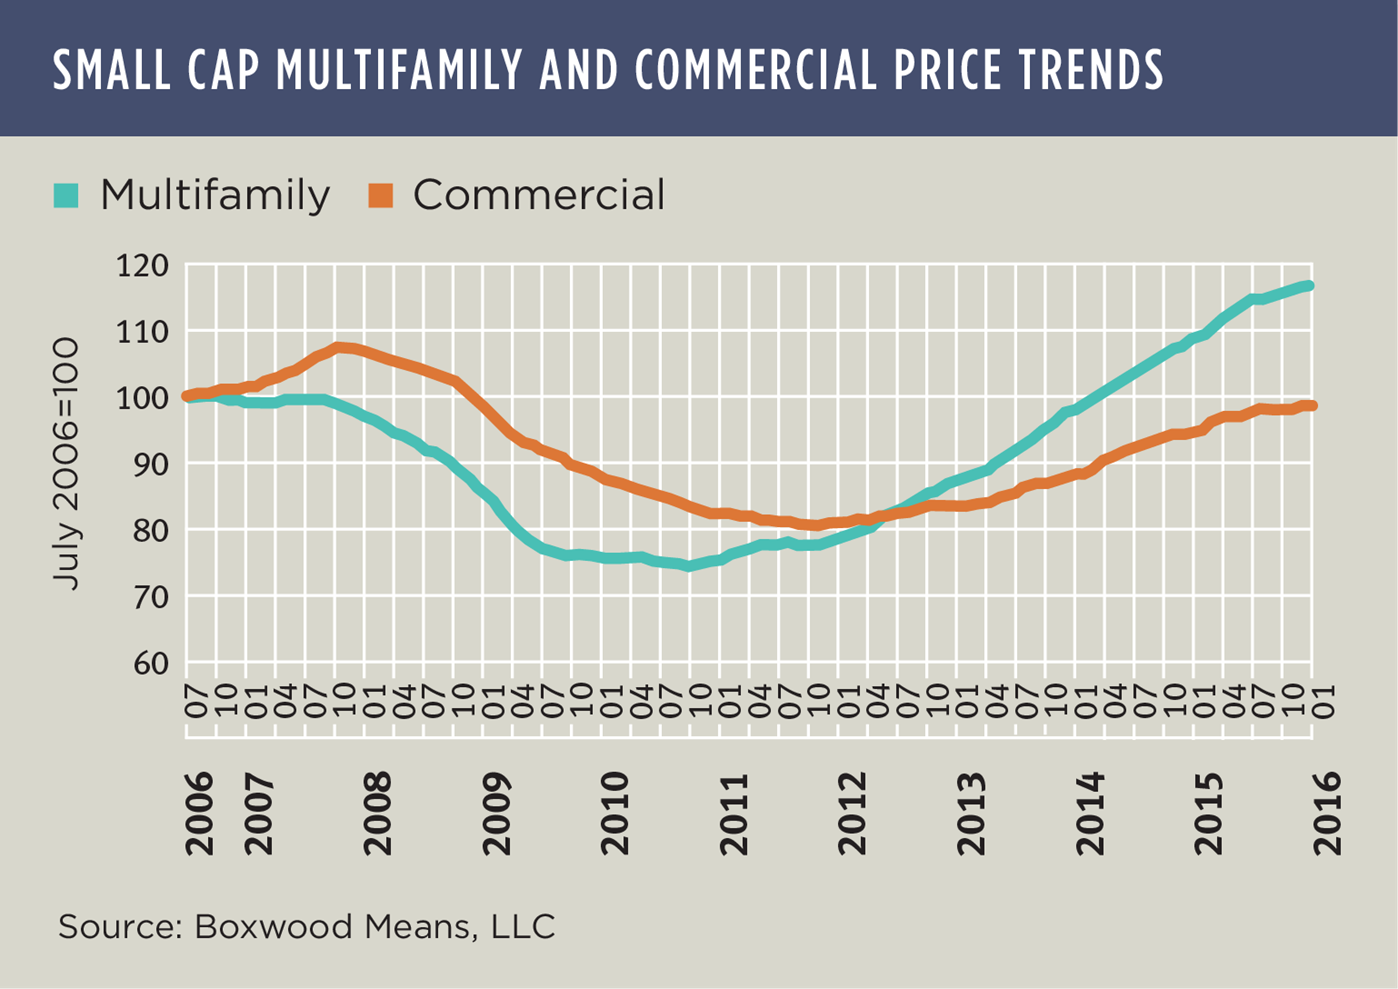 Heated Small Cap Multifamily Prices Cool Off